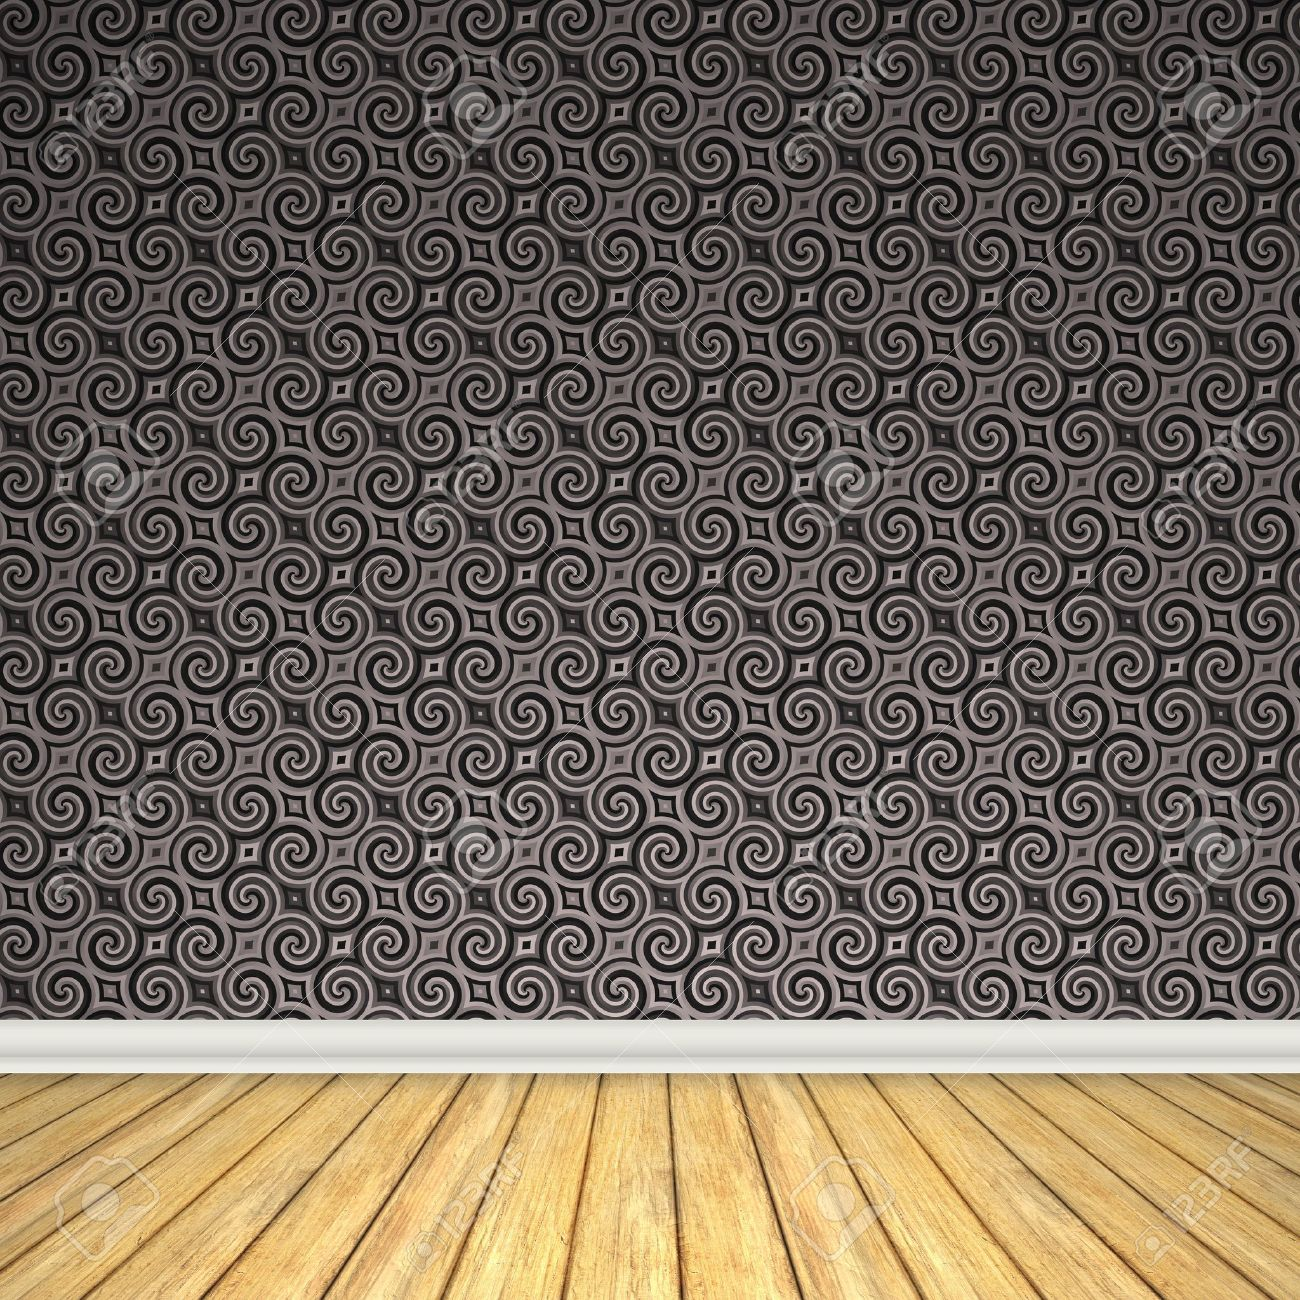 An empty room interior backdrop with hard wood flooring and a vintage  styled wallpaper pattern. An Empty Room Interior Backdrop With Hard Wood Flooring And A